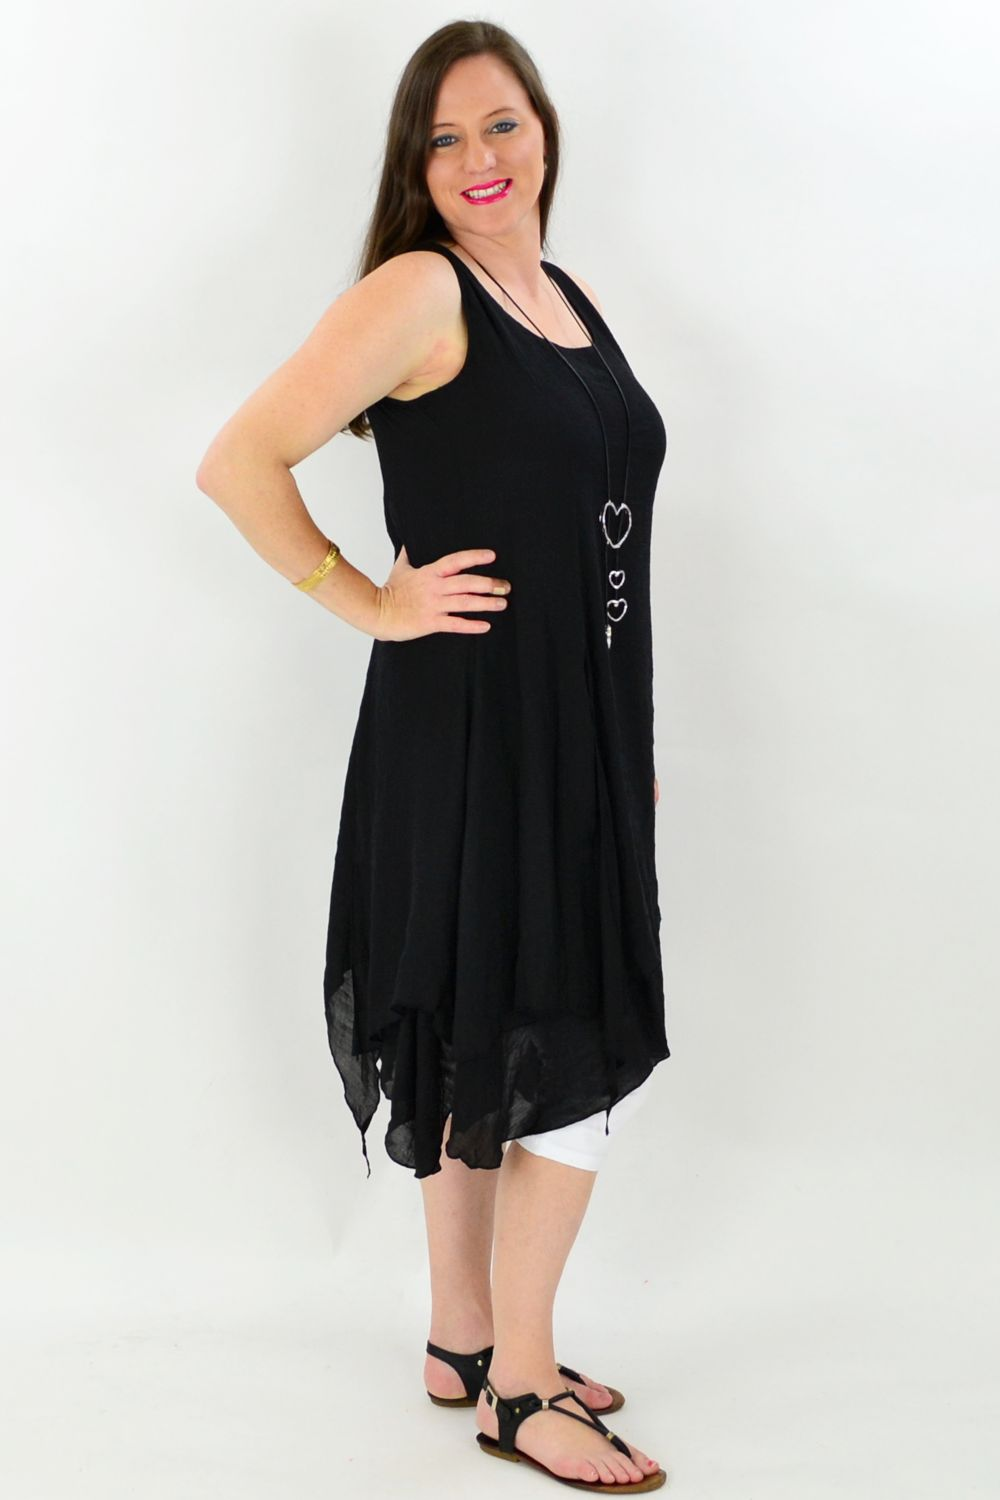 Black Maui Tunic Dress | I Love Tunics | Tunic Tops | Tunic Dresses | Women's Tops | Plus Size Australia | Mature Fashion